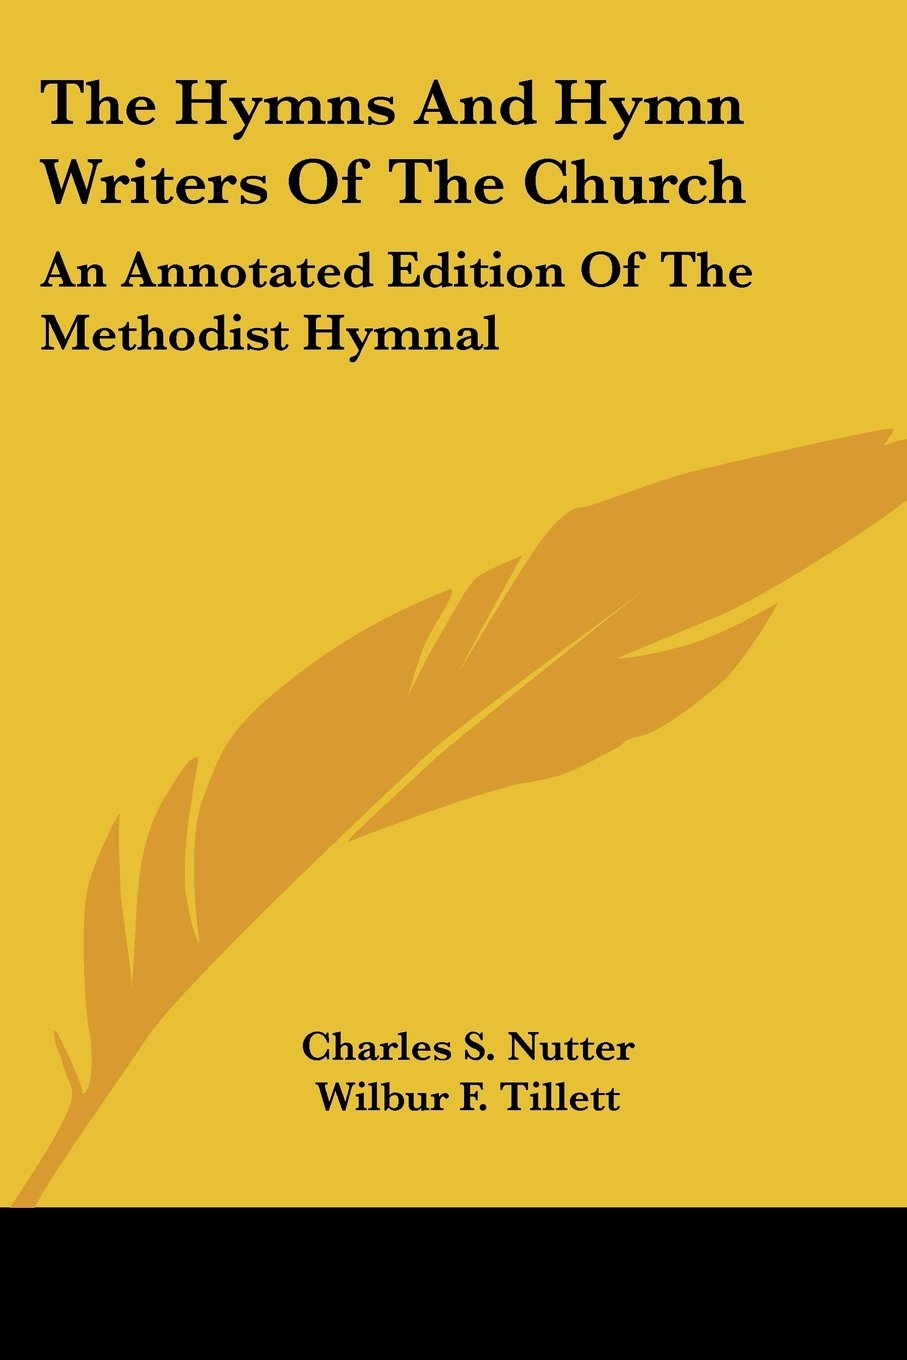 Download The Hymns And Hymn Writers Of The Church: An Annotated Edition Of The Methodist Hymnal ebook